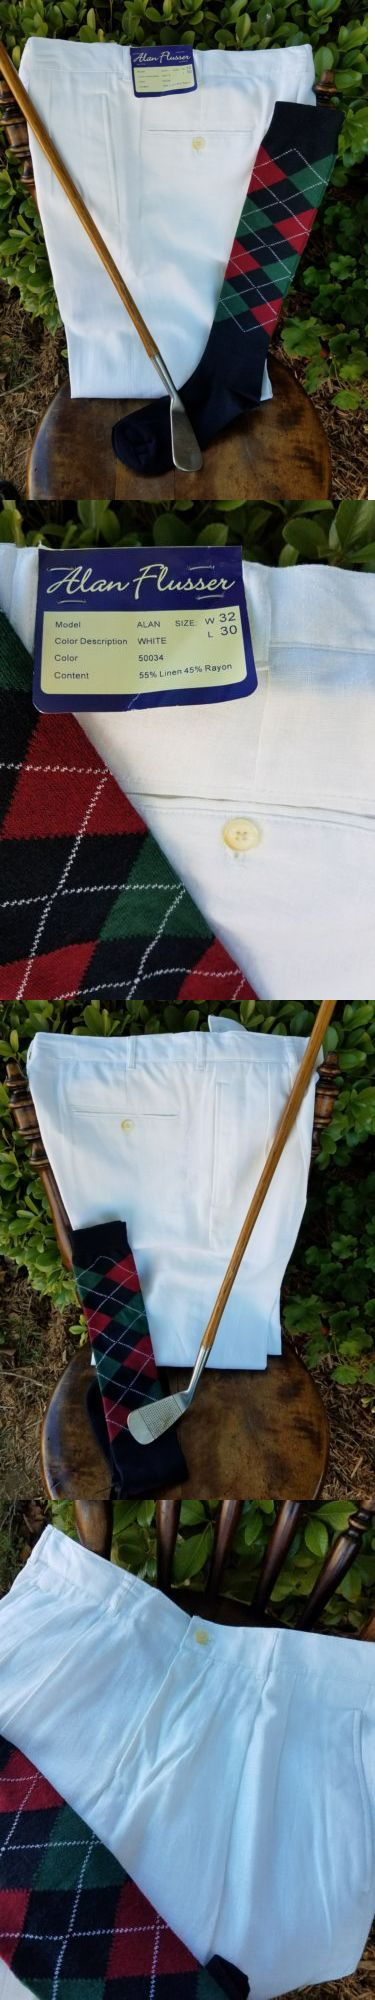 Other Golf Clothing 158939: Golf Knickers 32 Nwt! Alan Flusser Linen Rayon! New Argyles! Nice! -> BUY IT NOW ONLY: $36.95 on eBay!